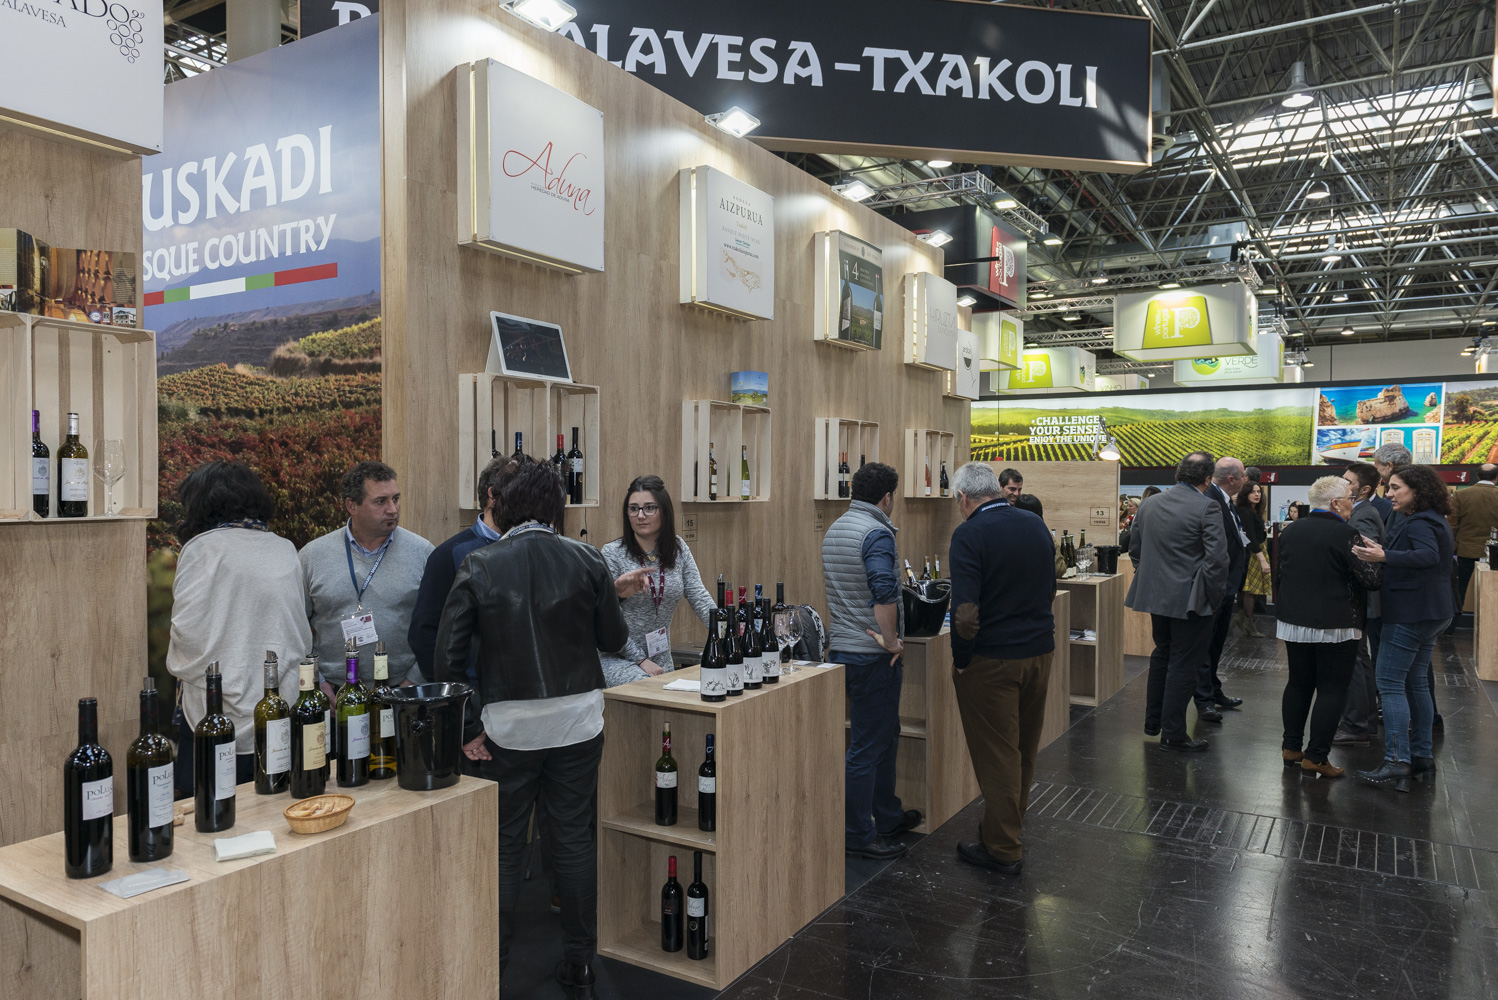 prowein_stand_euskadi_basque_country_06.jpg